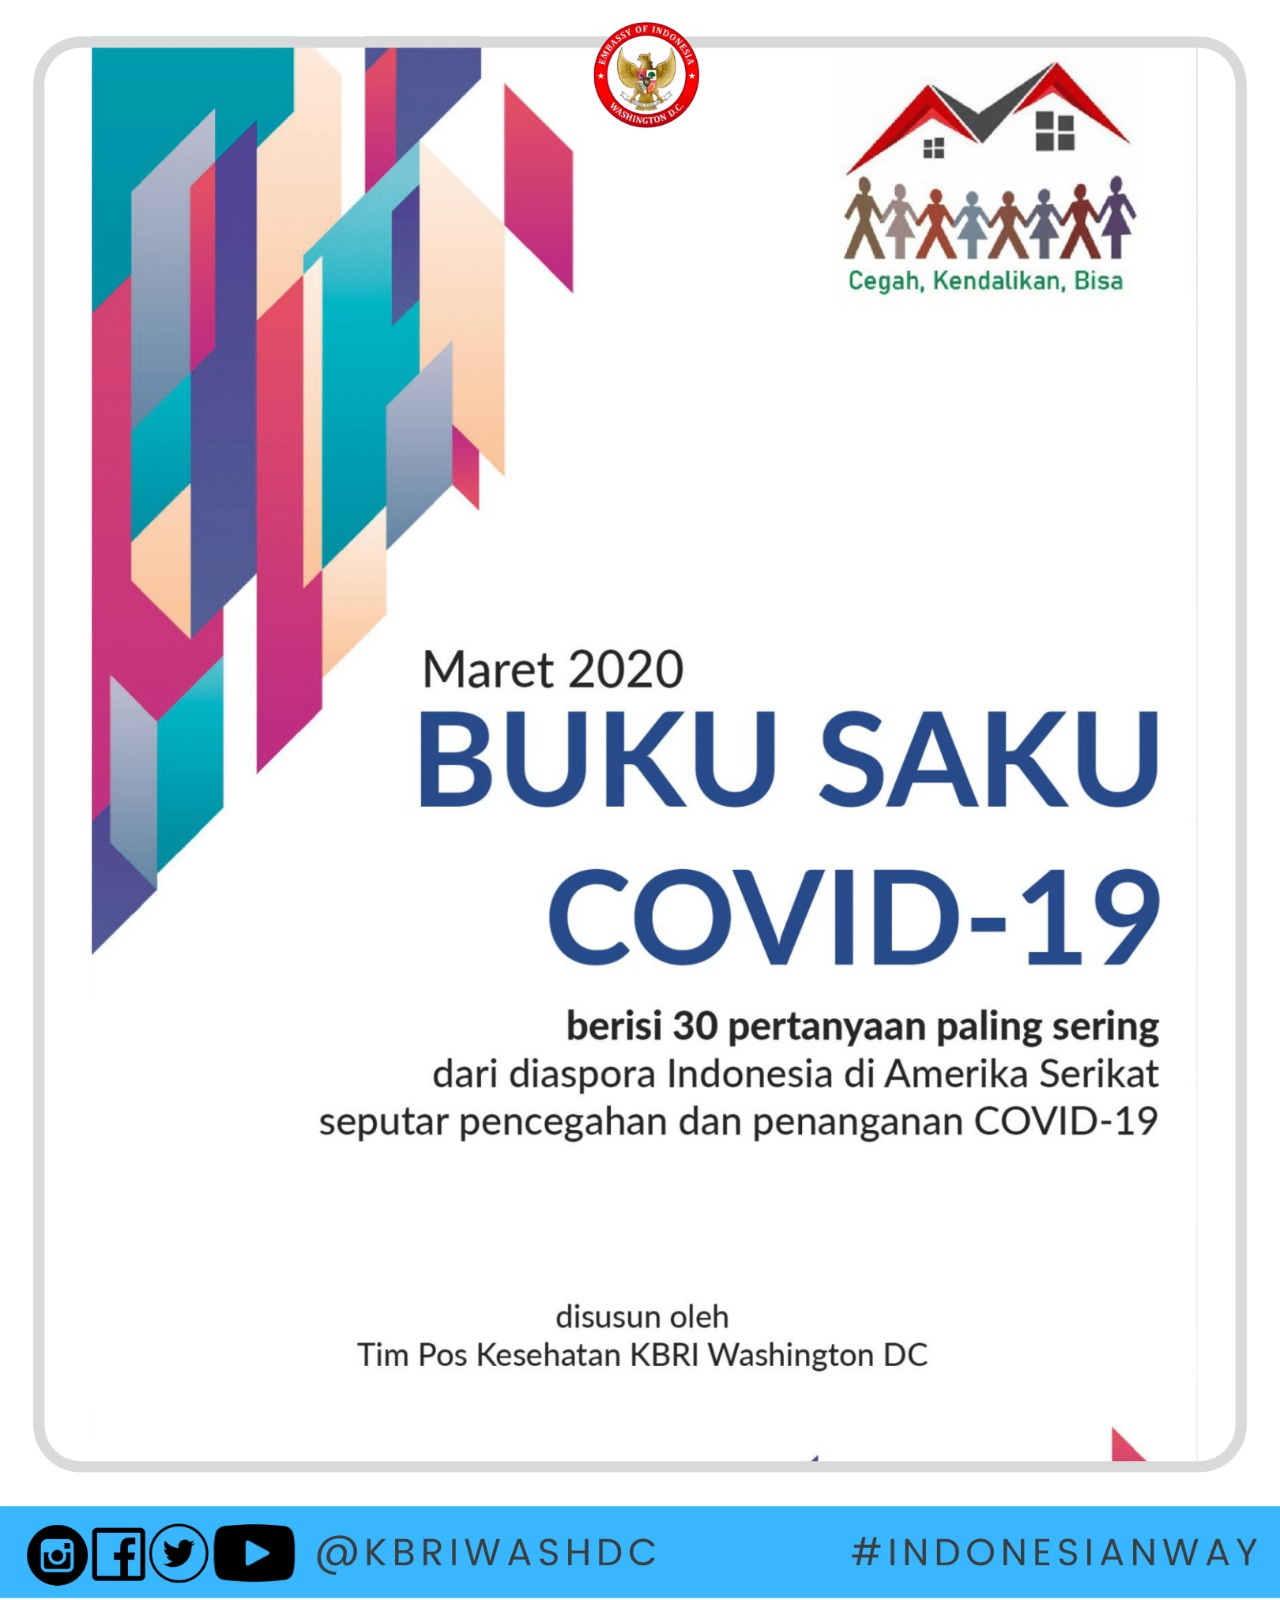 Buku Saku Covid 19 Oleh Tim Pos Kesehatan Diaspora Indonesia Embassy Of The Republic Of Indonesia Washington D C